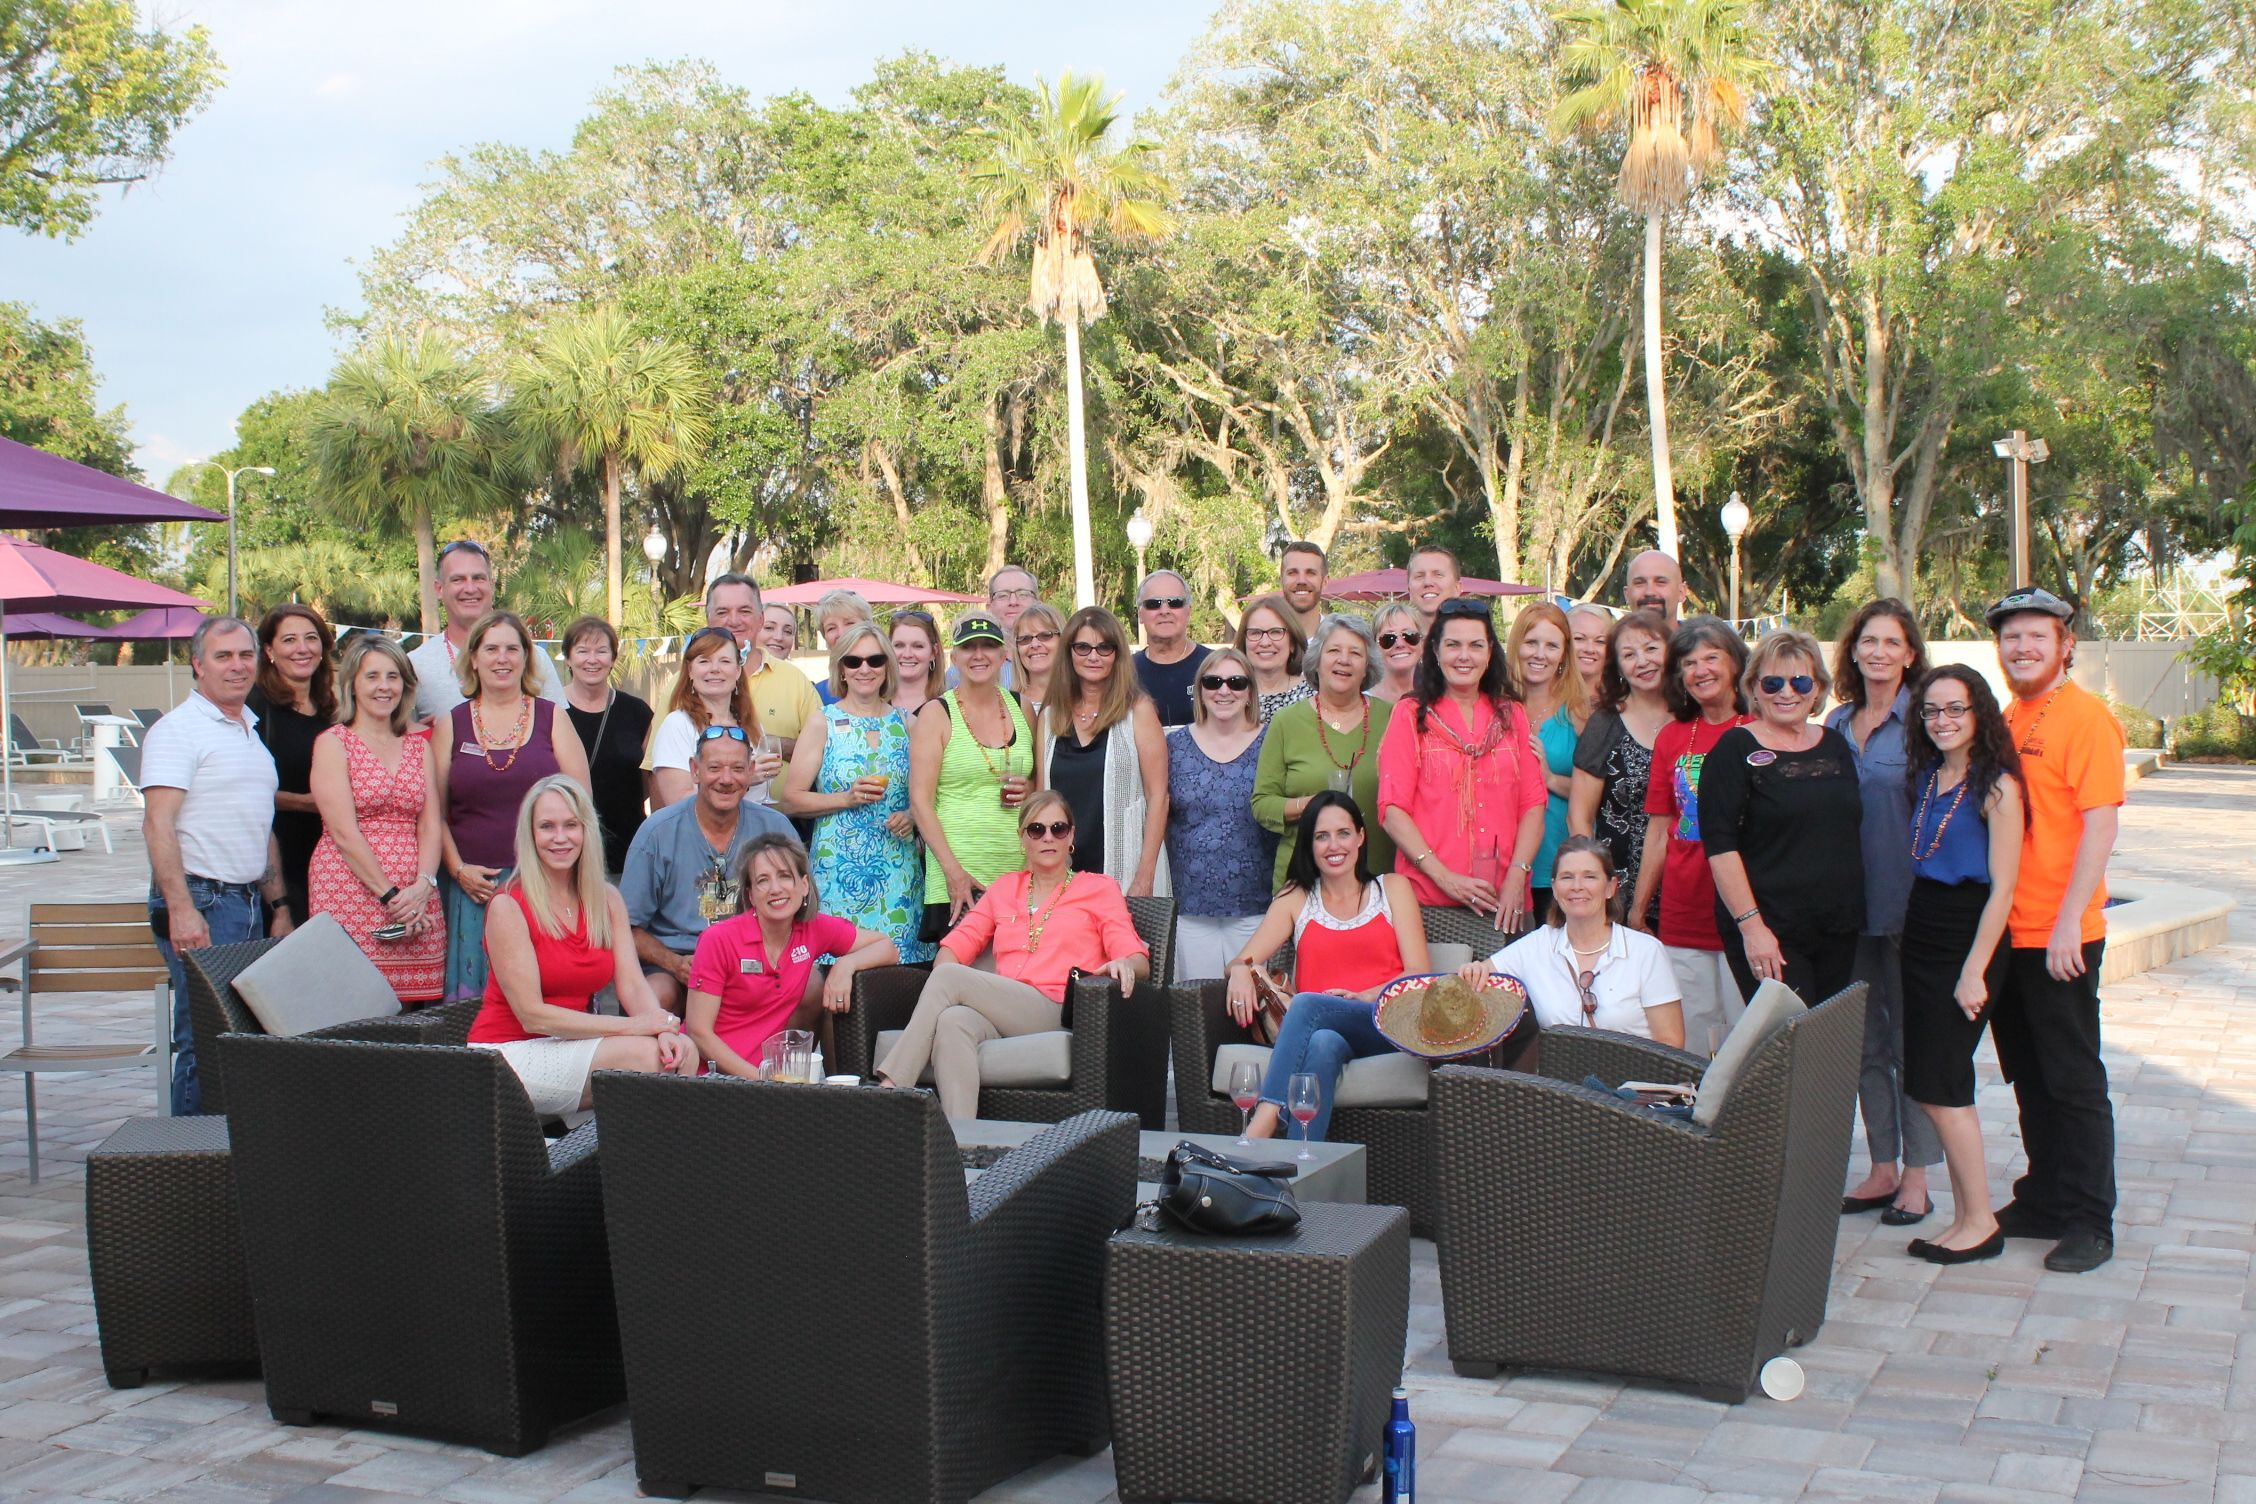 Our Appreciation Get Together at East lake Woodlands Country Club in May 2017